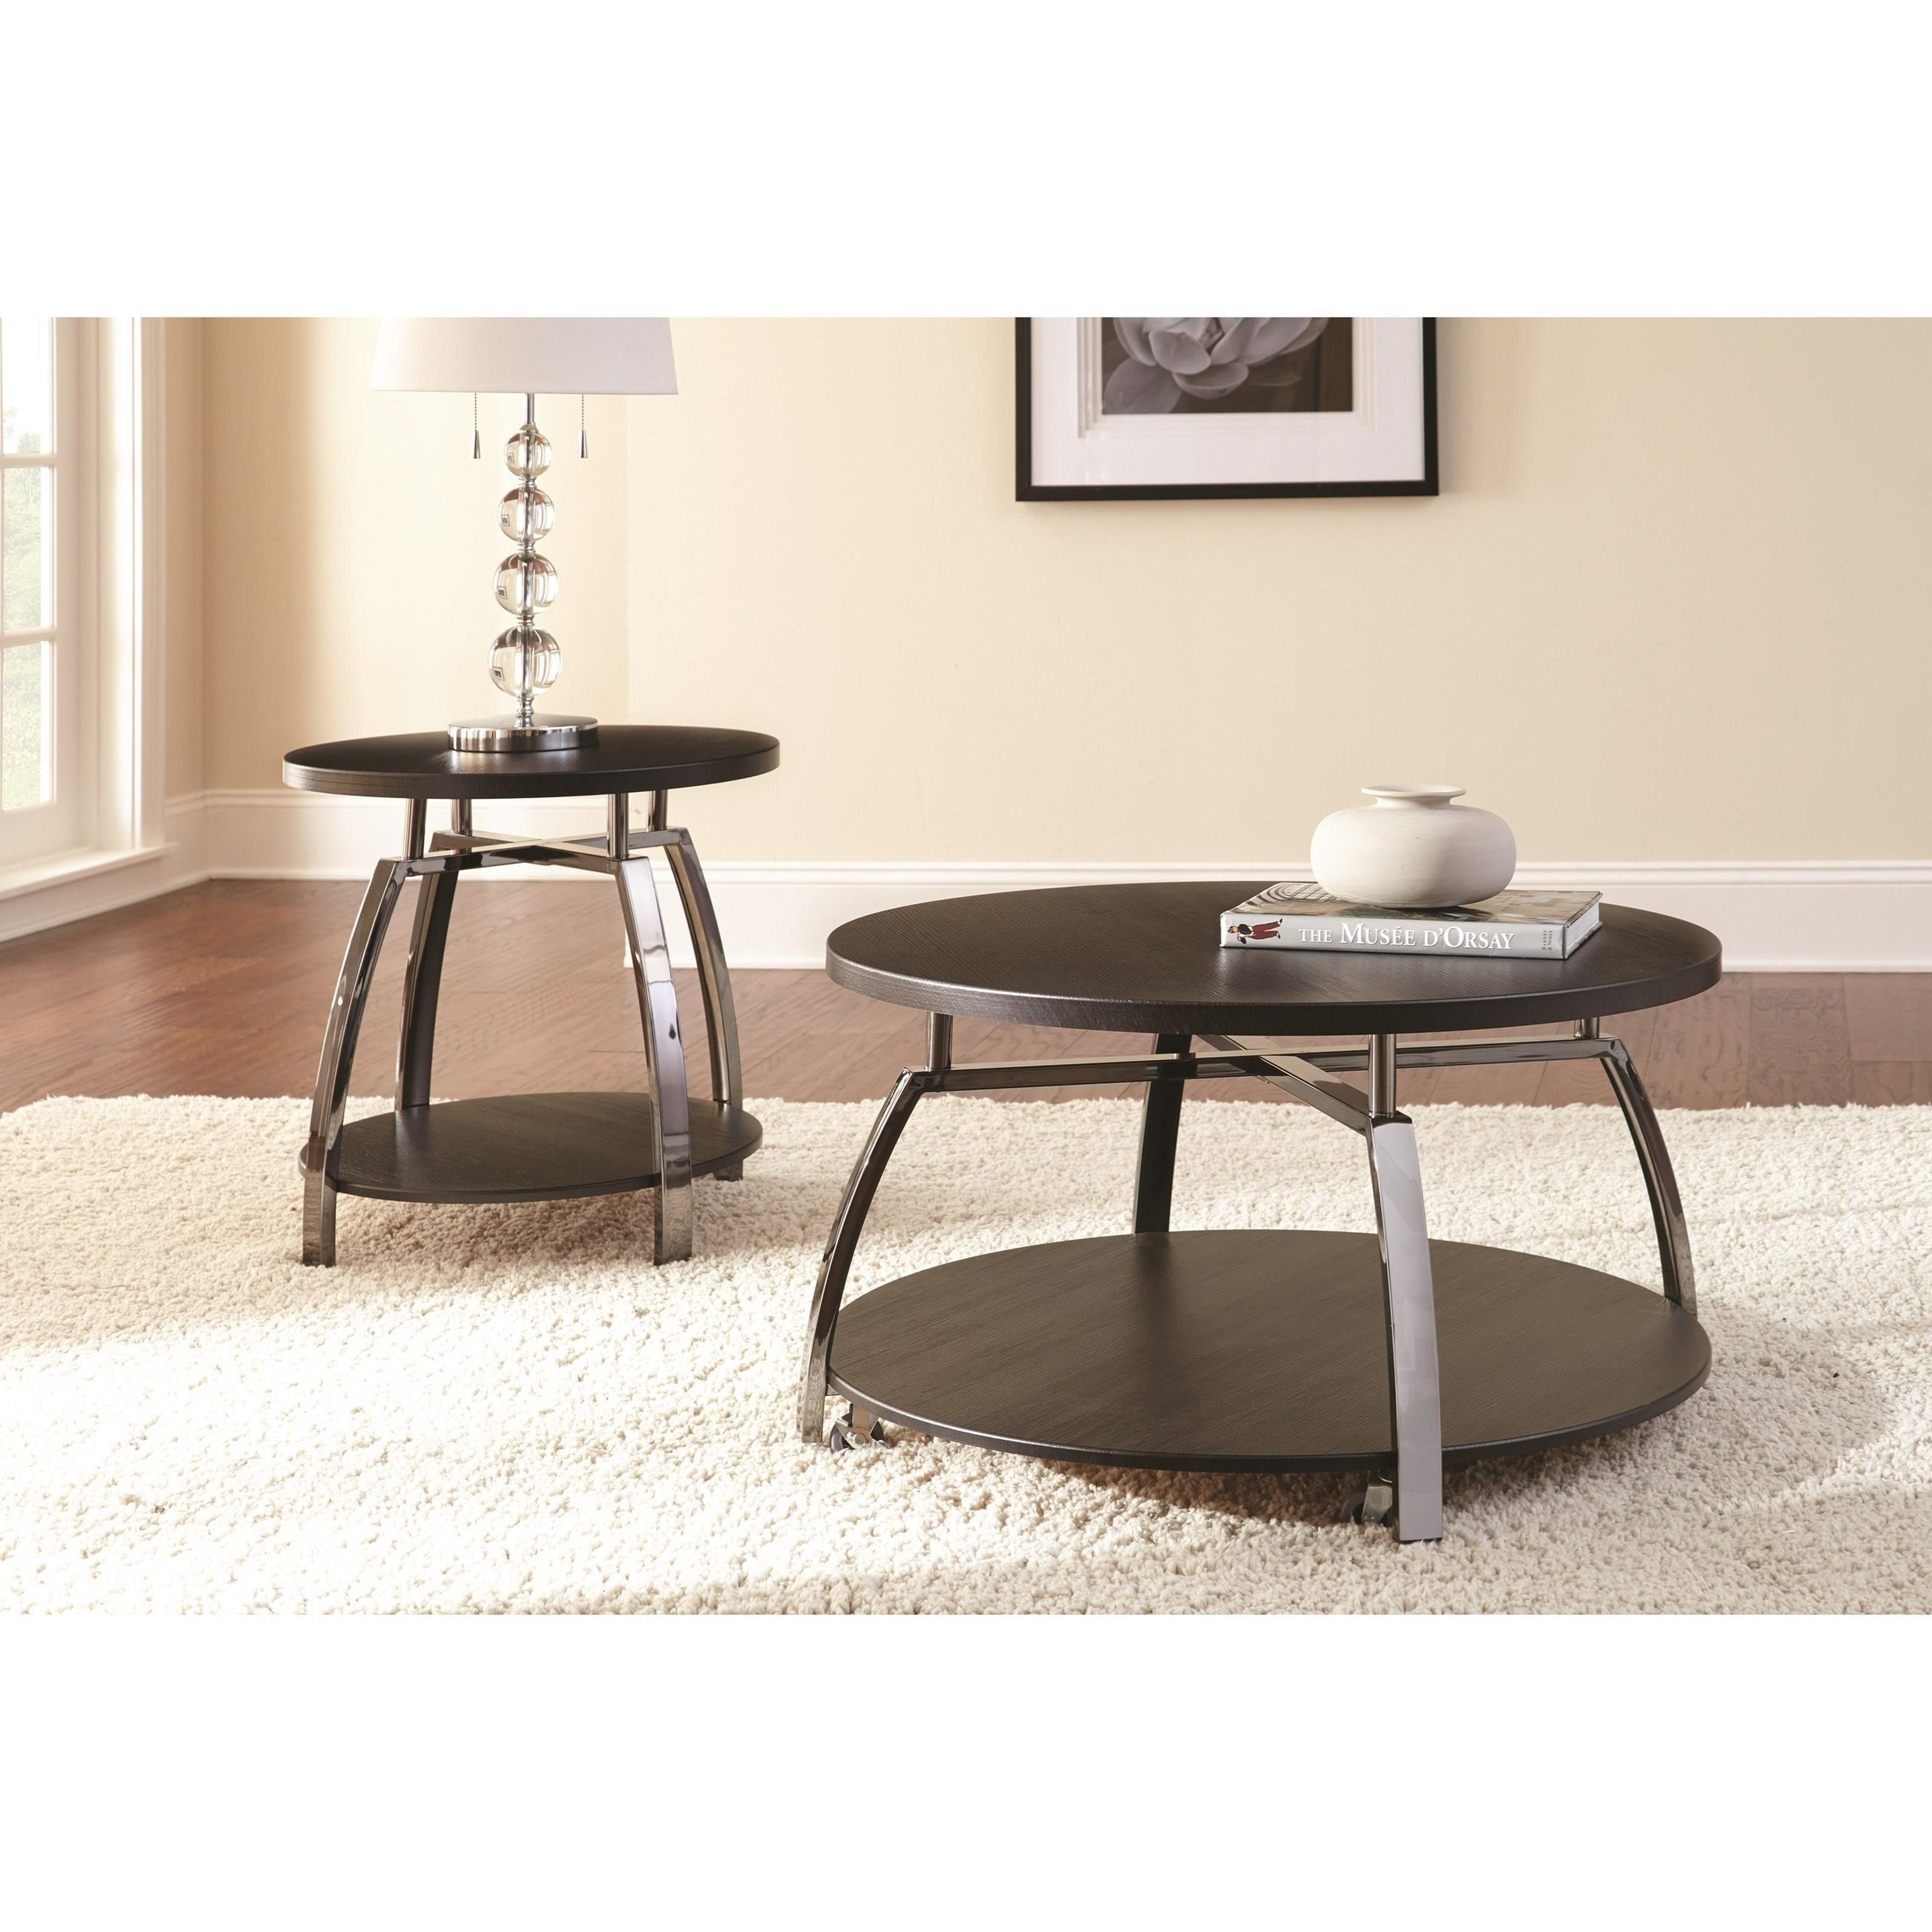 Steve Silver Coham Cm150e Round End Table With Metal Frame